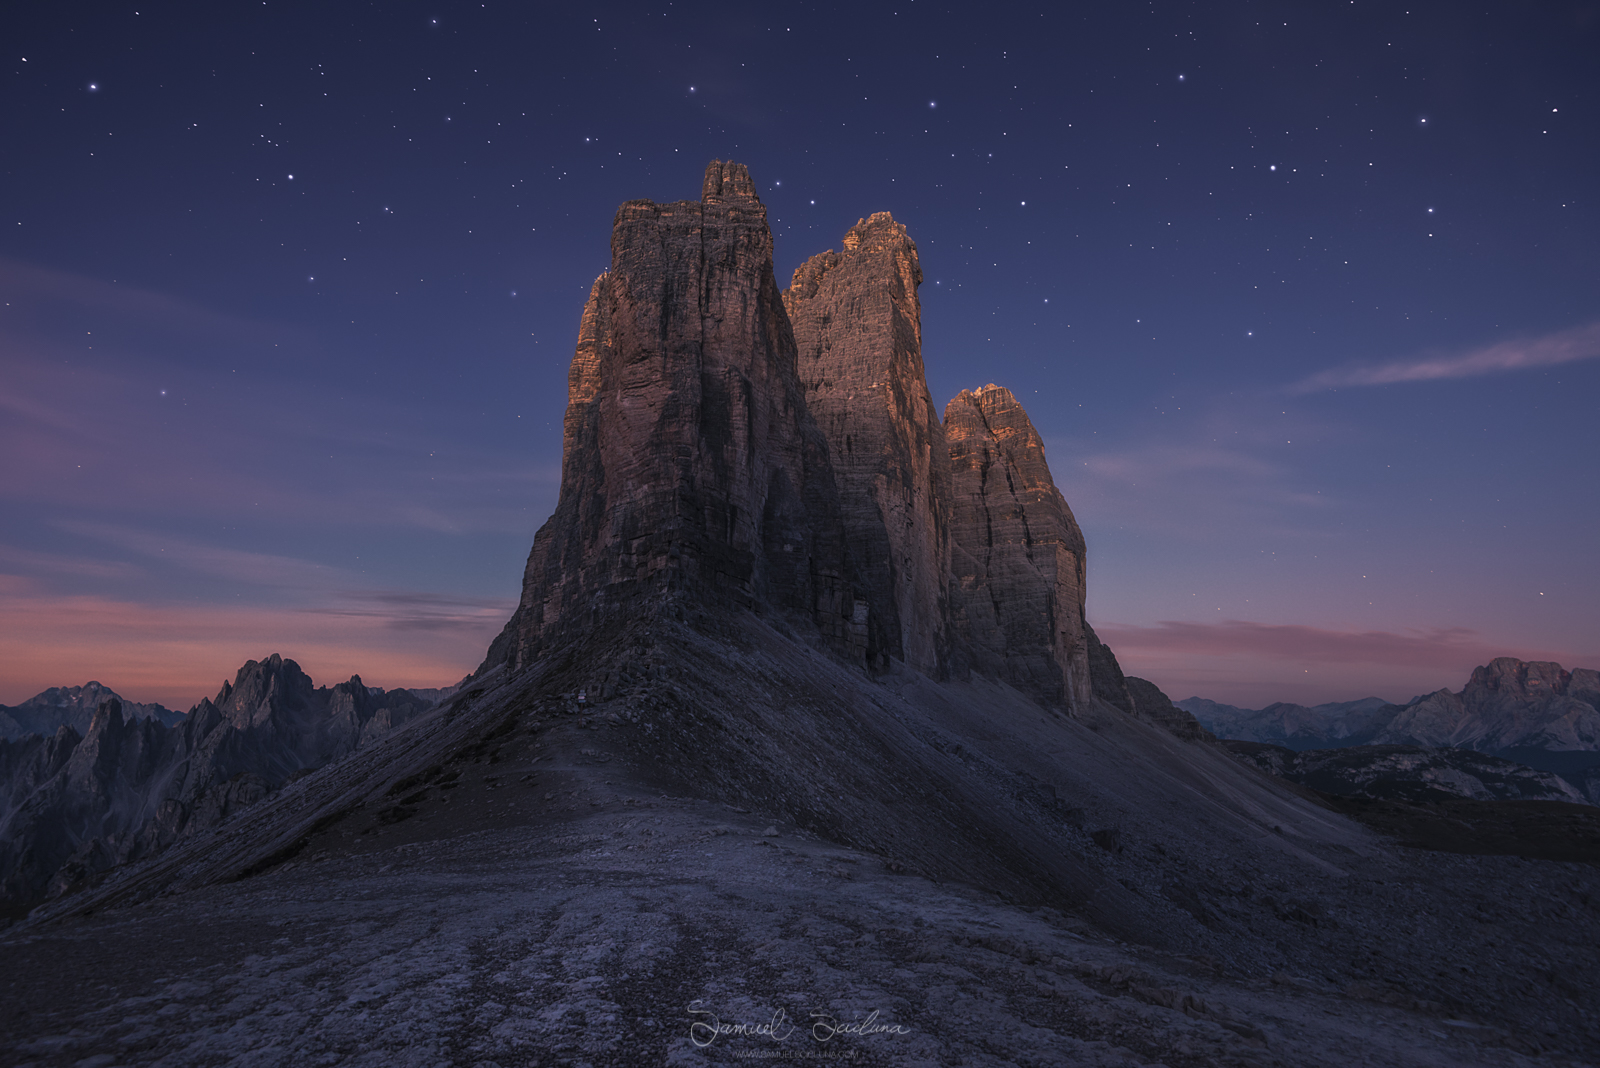 Alpen glow hitting the Tre Cime before sunrise as the stars fade into the dawn.